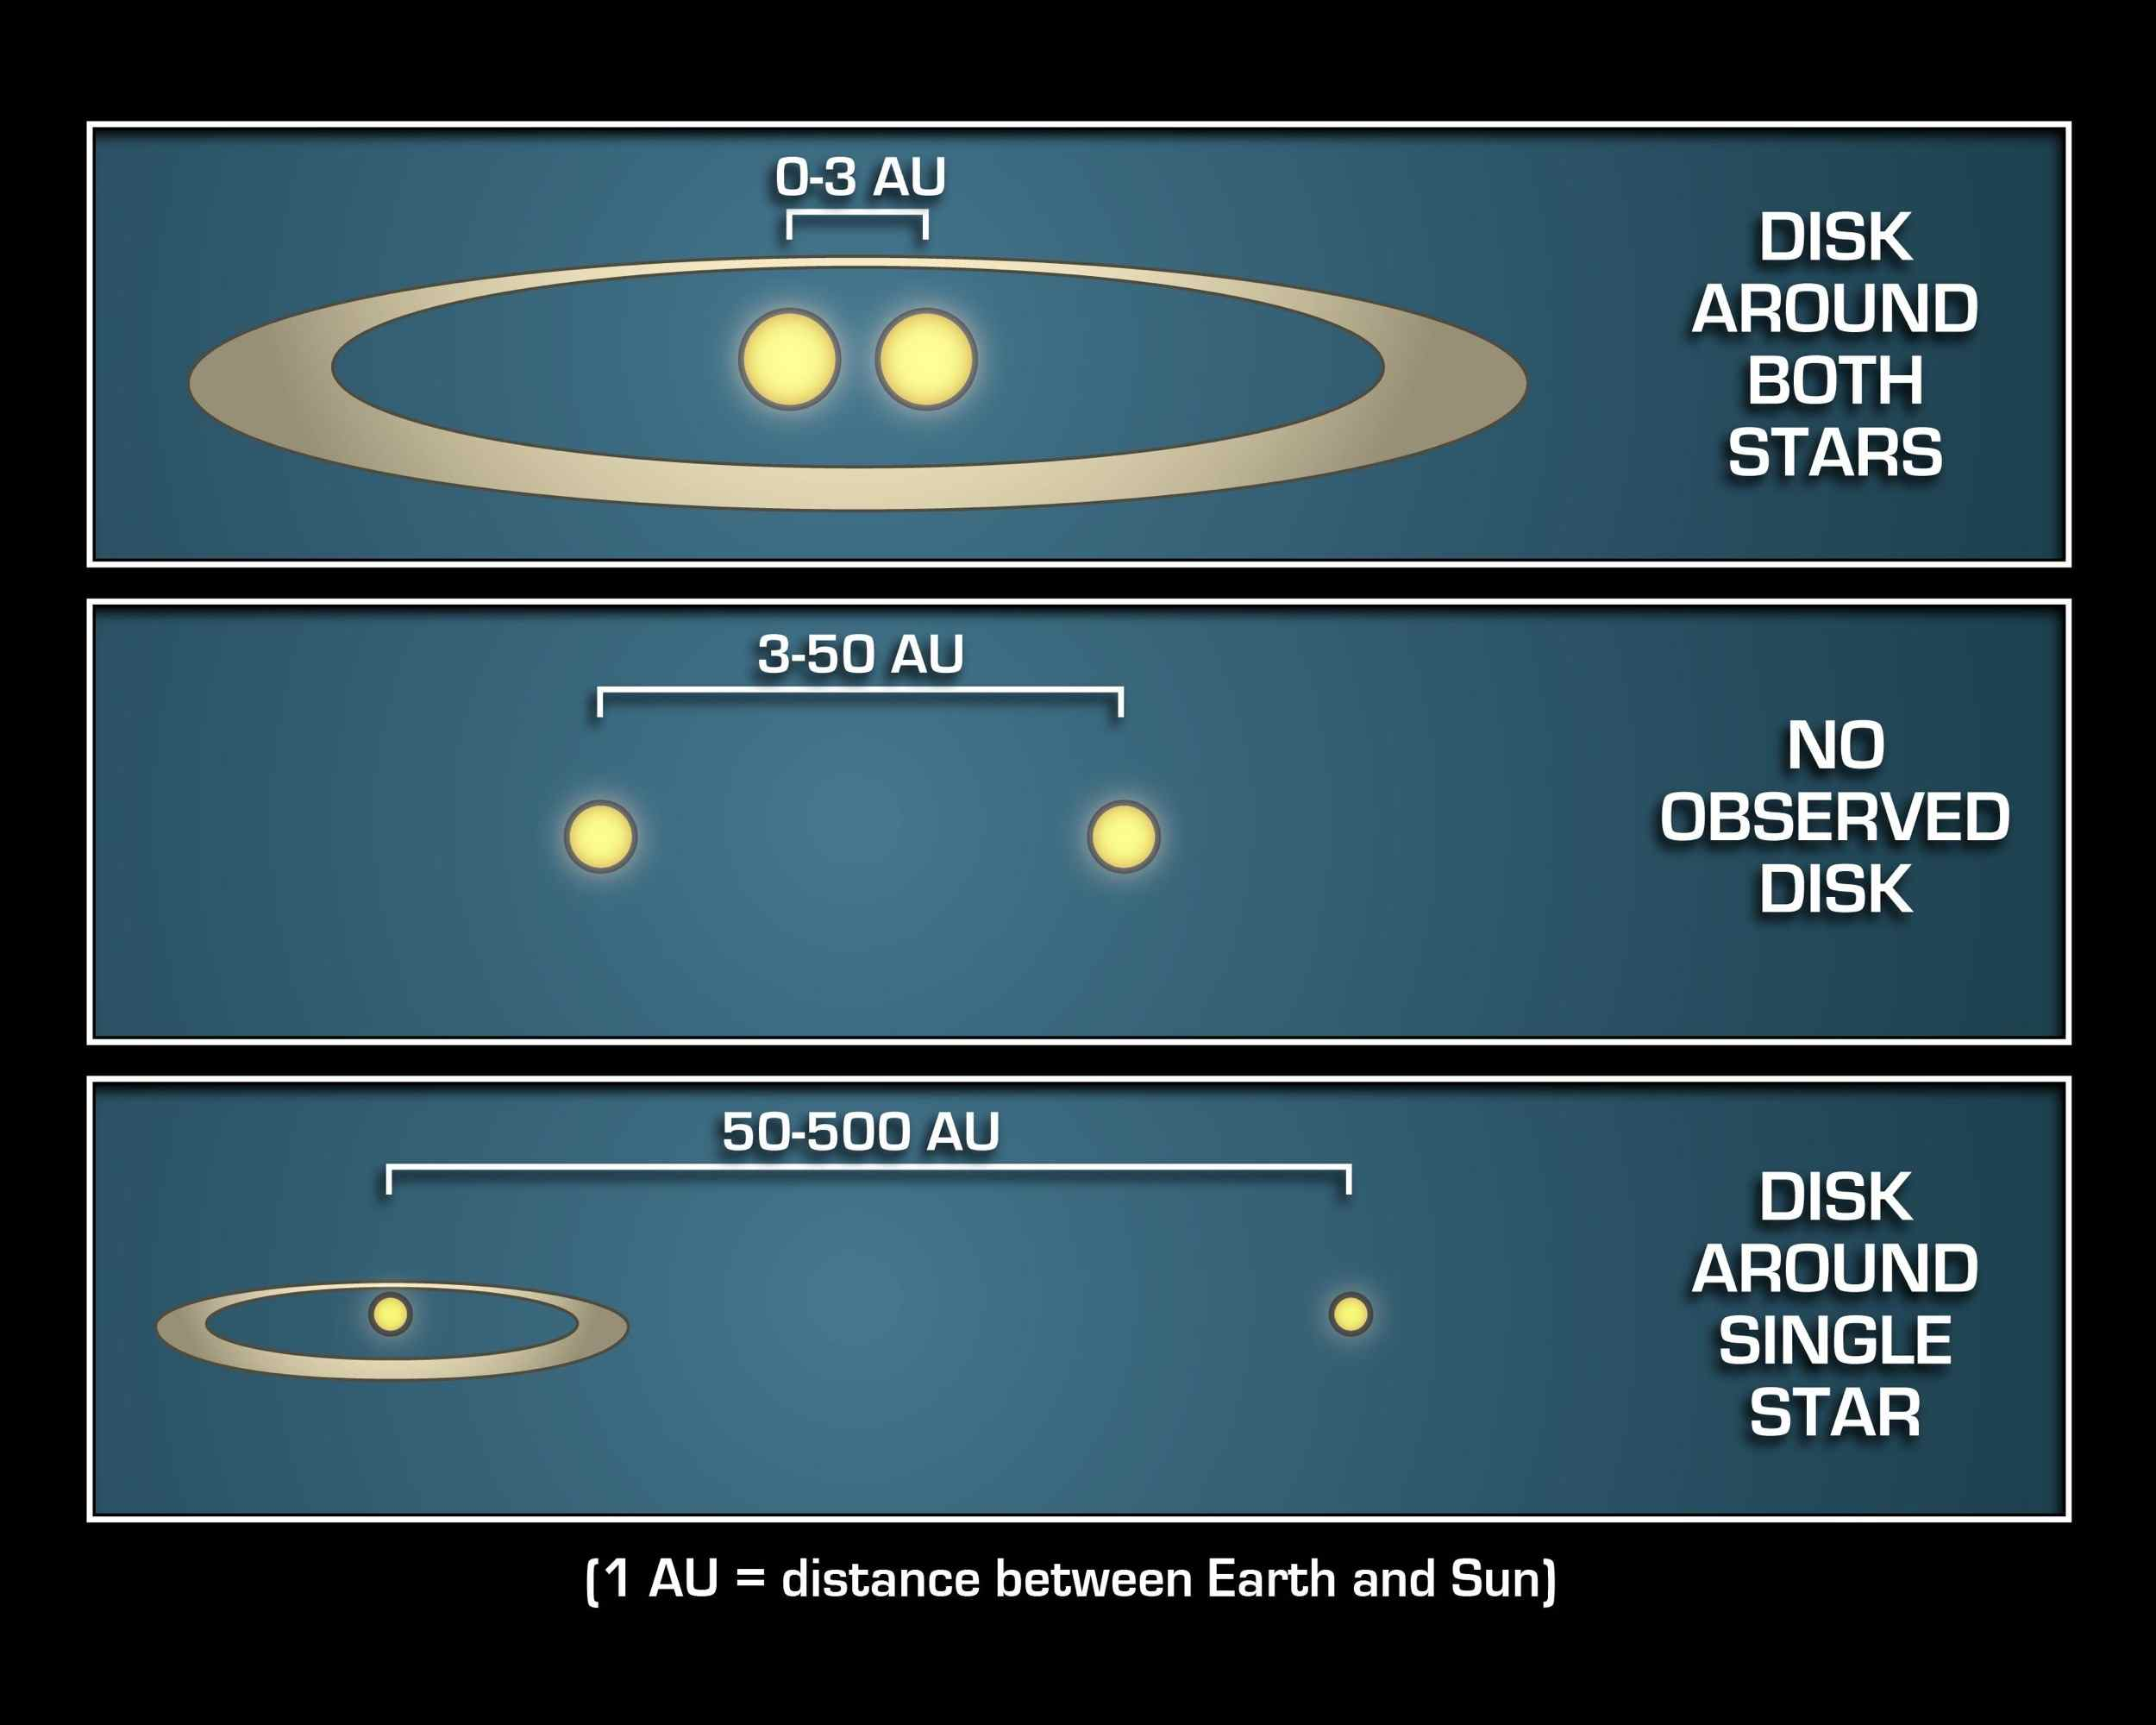 This diagram illustrates that mature planetary systems like our own might be more common around twin, or binary, stars that are either really close together, or really far apart.